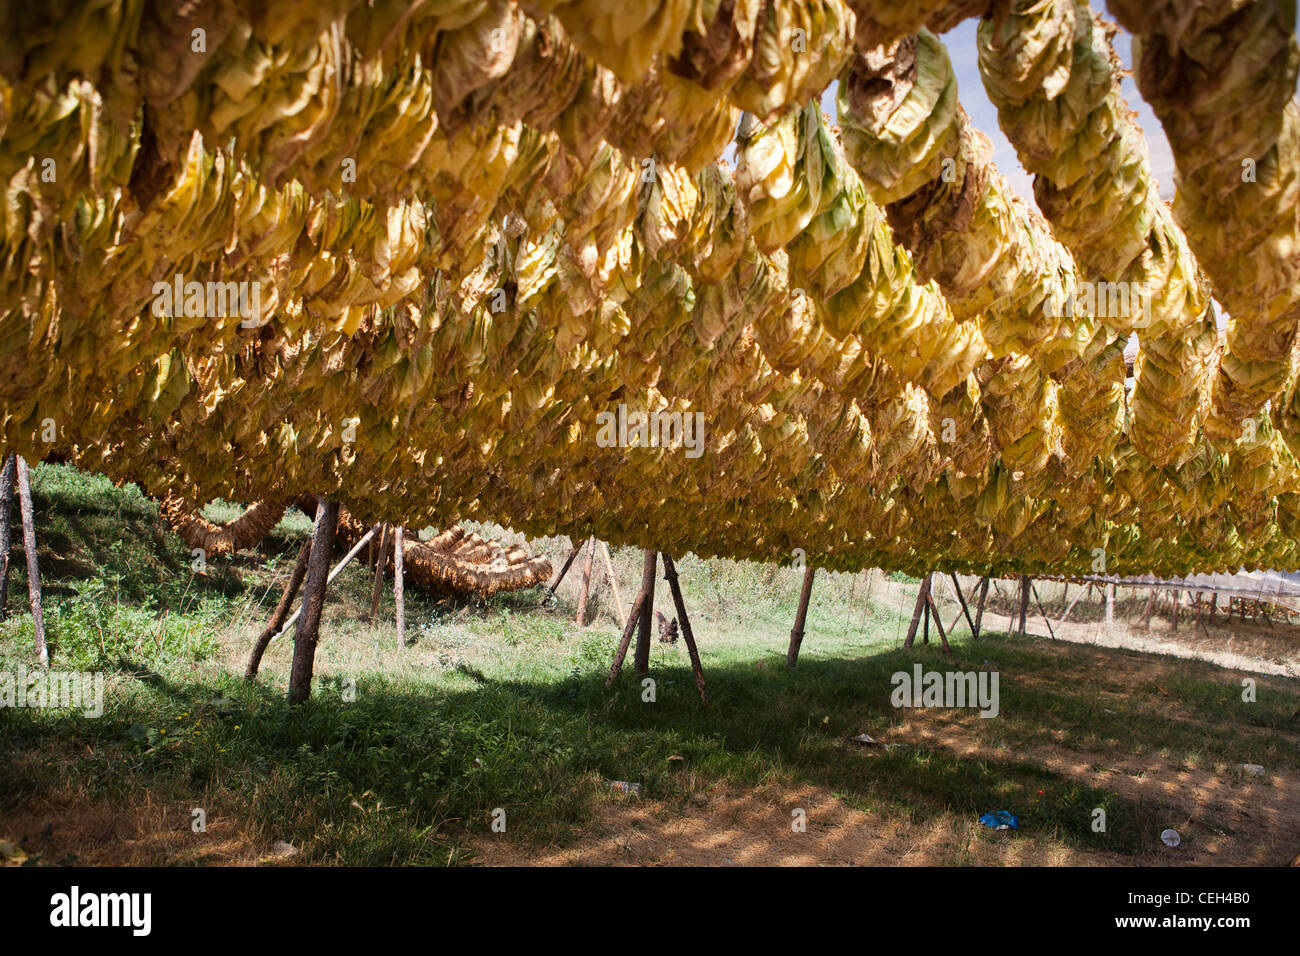 Tobacco leaves drying-out in the shade - Stock Image